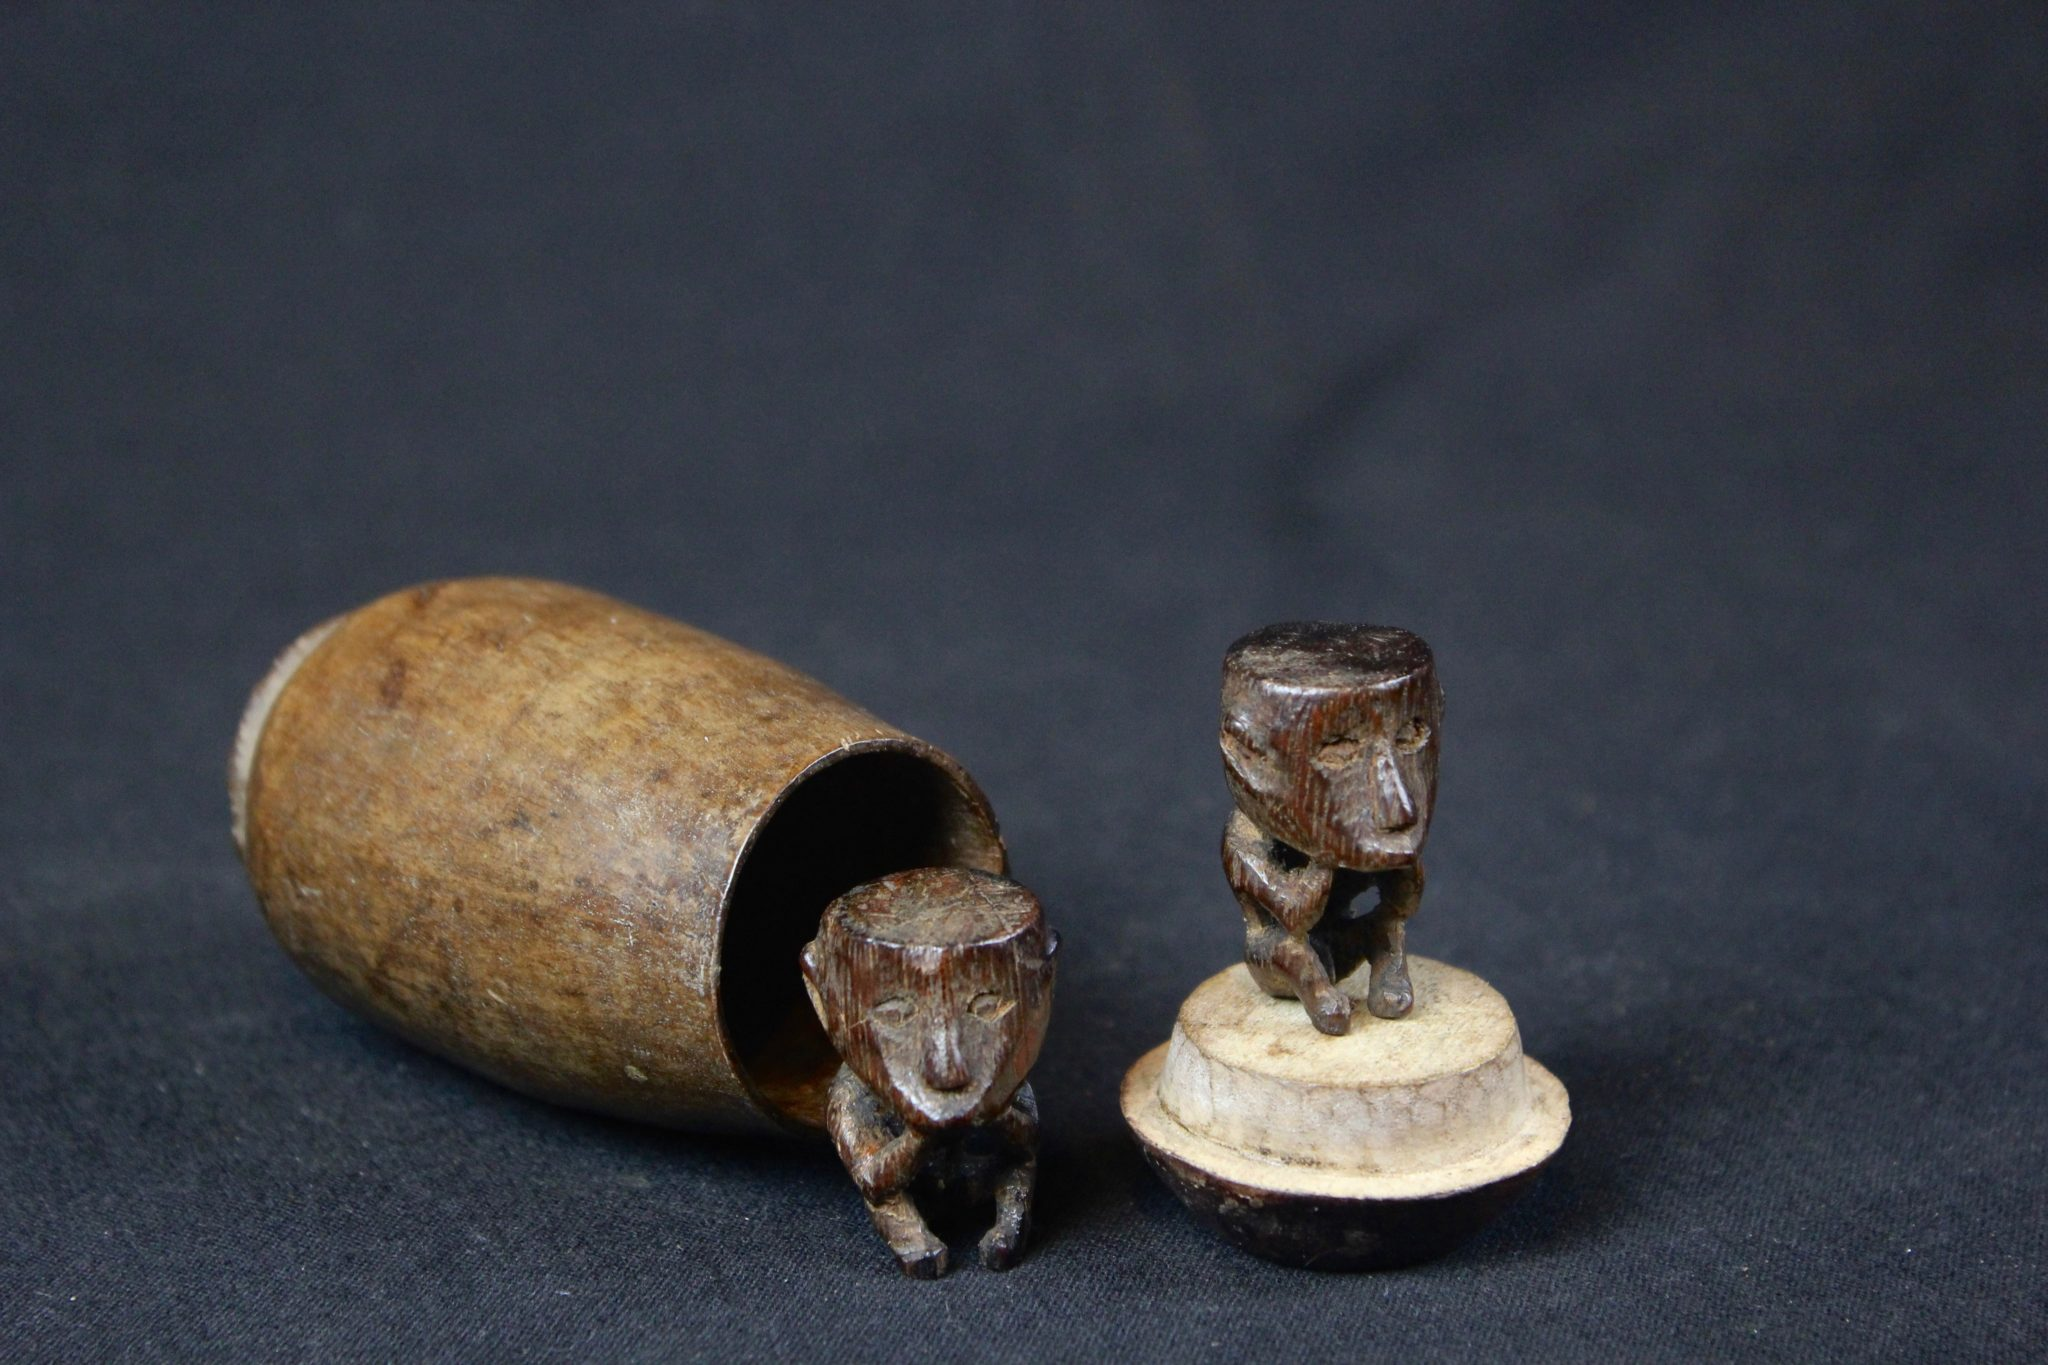 "Shaman Charms, West Sumba Island, Lesser Sunda Islands, Indonesia, Lamboya village, Early 20th c, Wood, smooth patina from use and age. Healing amulets. 3 ½"" x 2"" x 2"" (container); 1 ¼"" x ¾' x ½"" (each figure), $375."